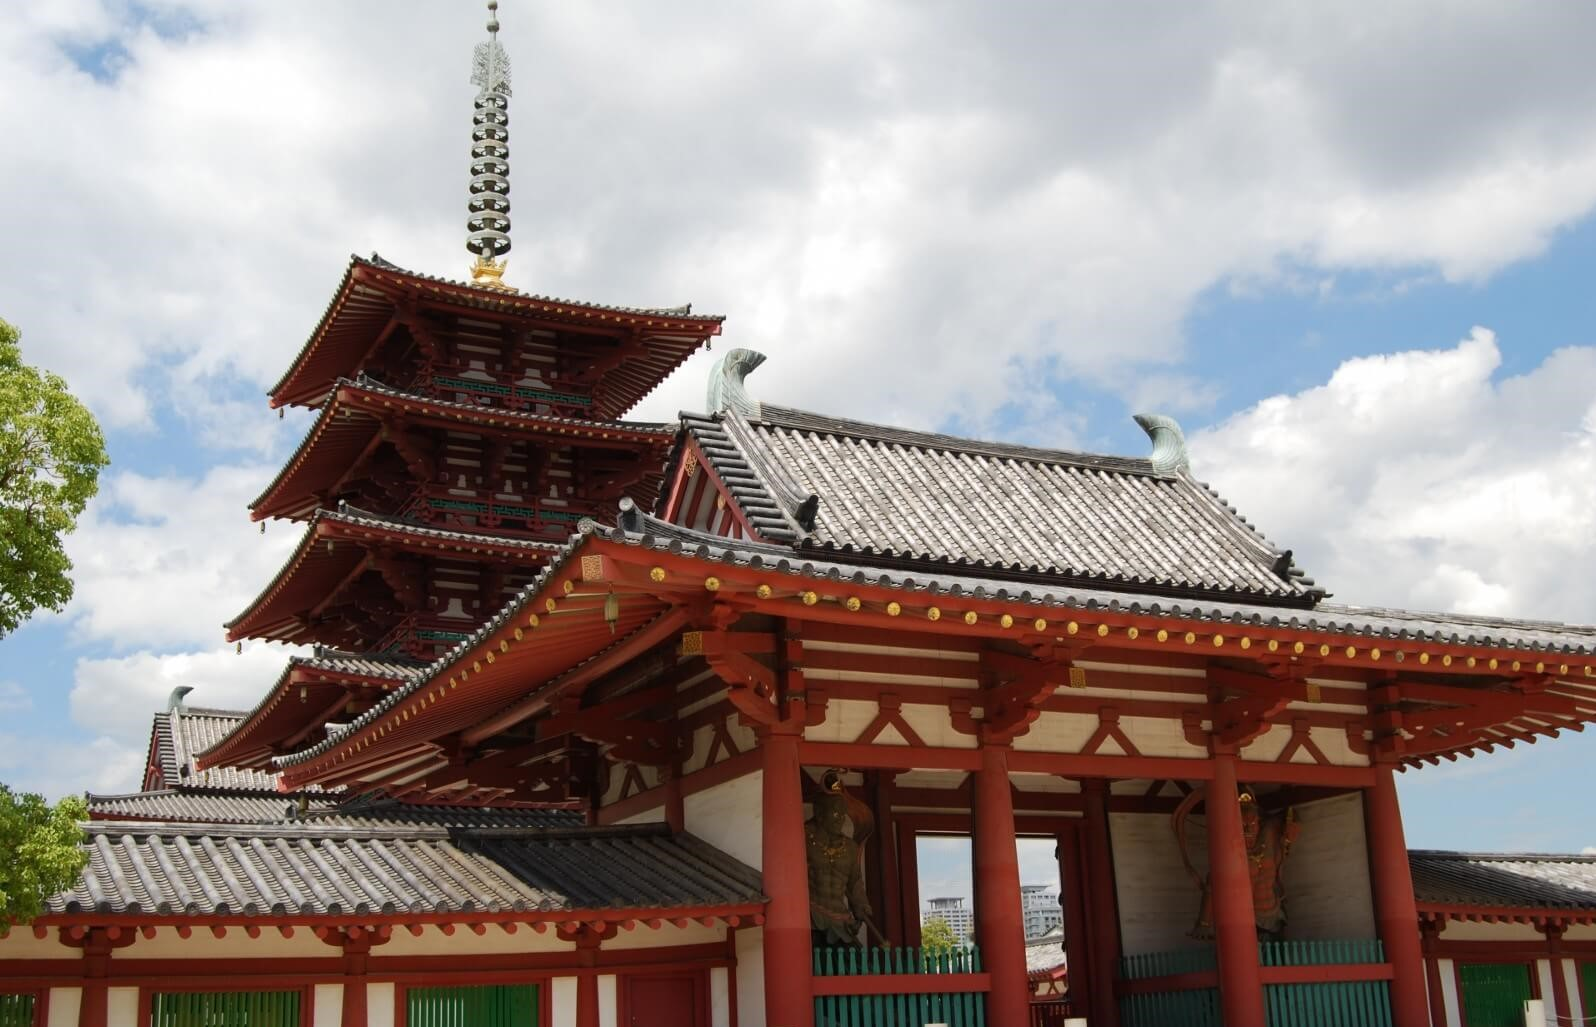 The 5-story pagoda and the middle gate of Shitennoji Temple